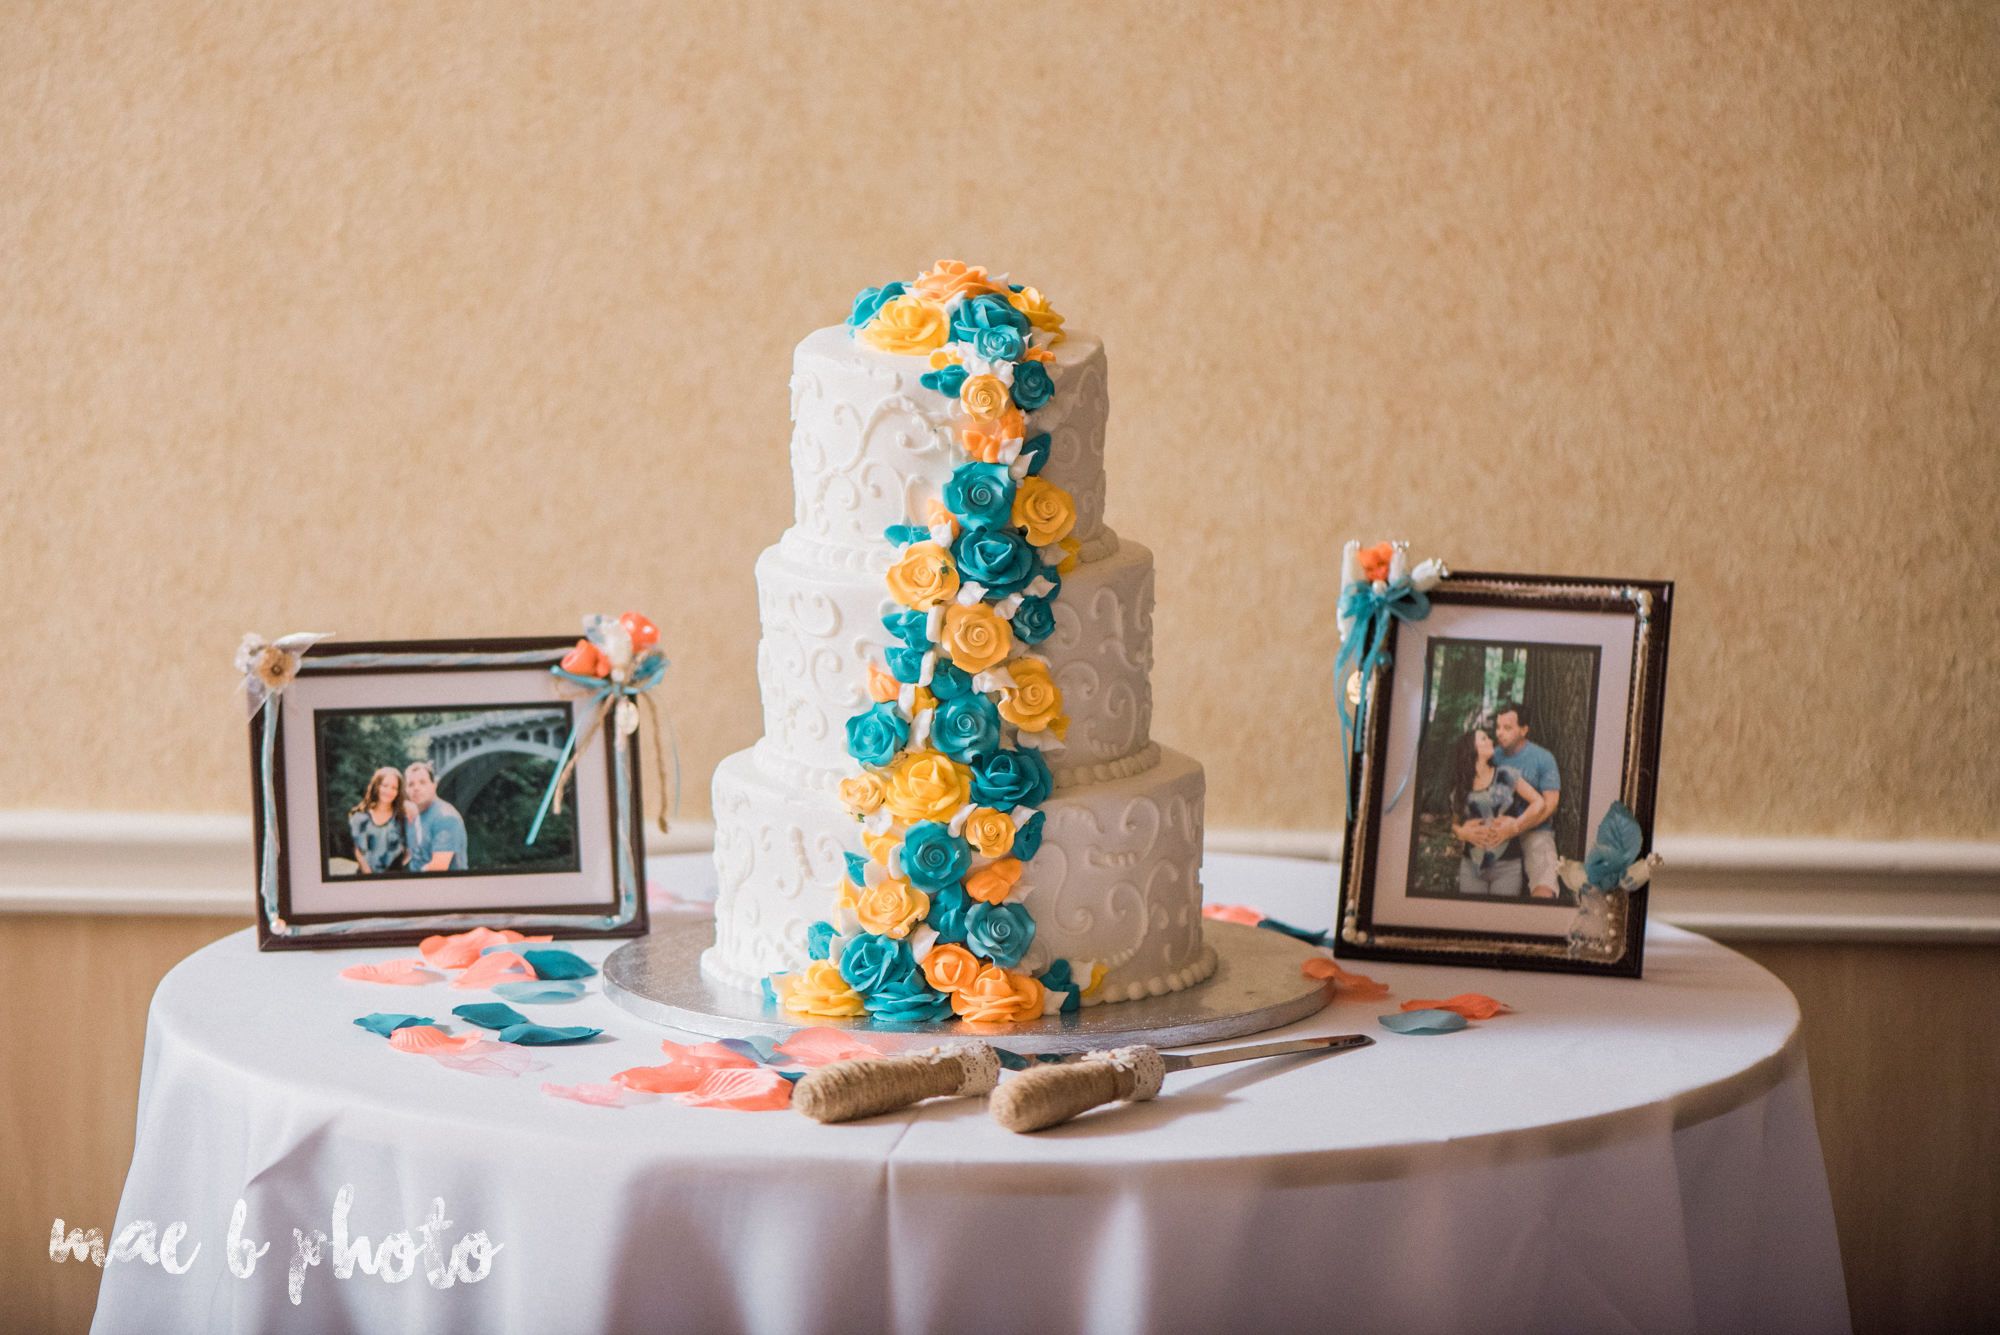 kristy and matt's summer wedding at the embassy in youngstown ohio photographed by youngstown wedding photographer mae b photo-39.jpg